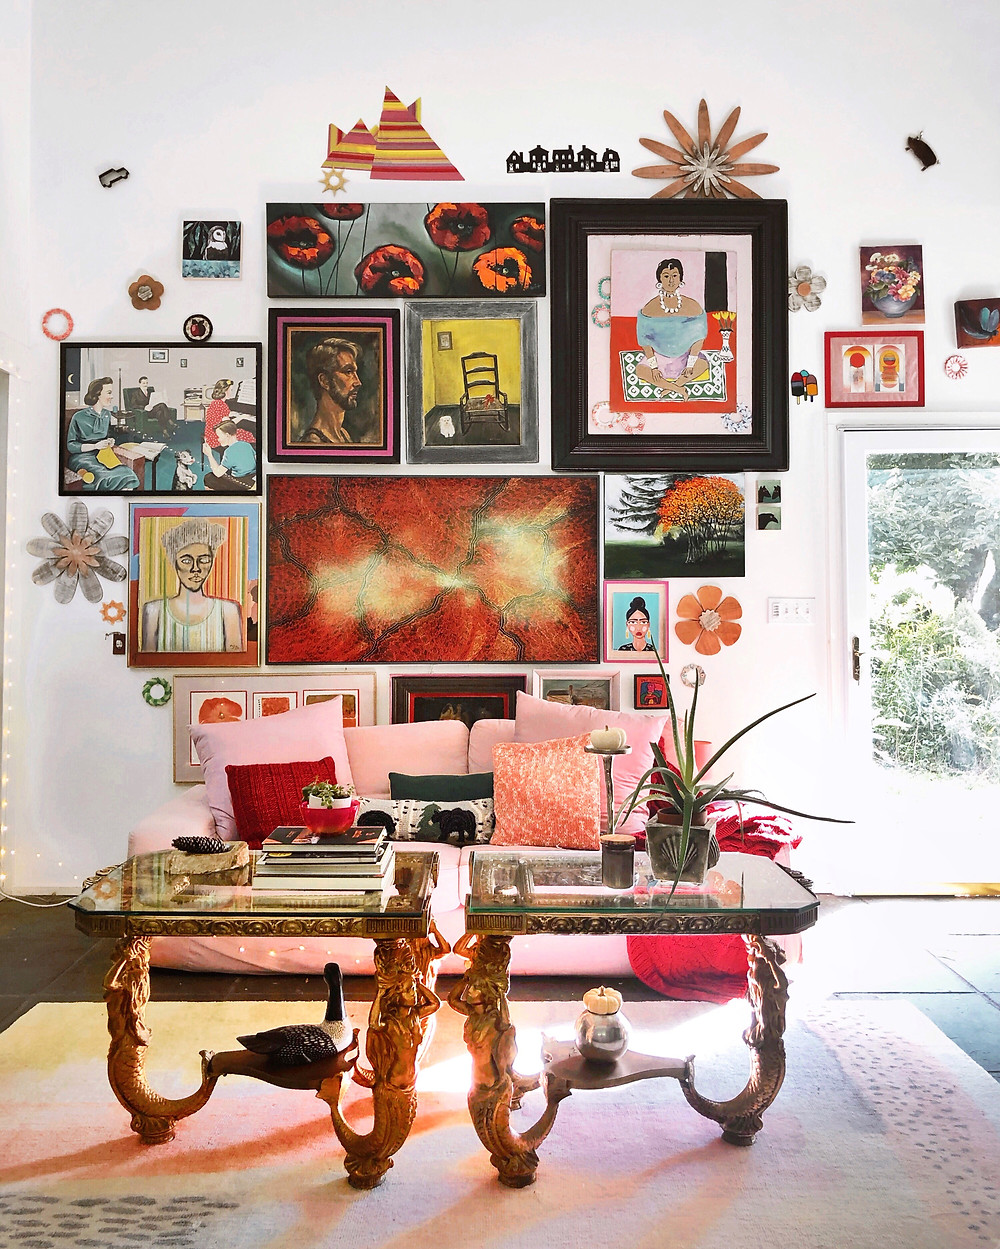 Whimsical gallery wall, mermaid tables, pink and red decor